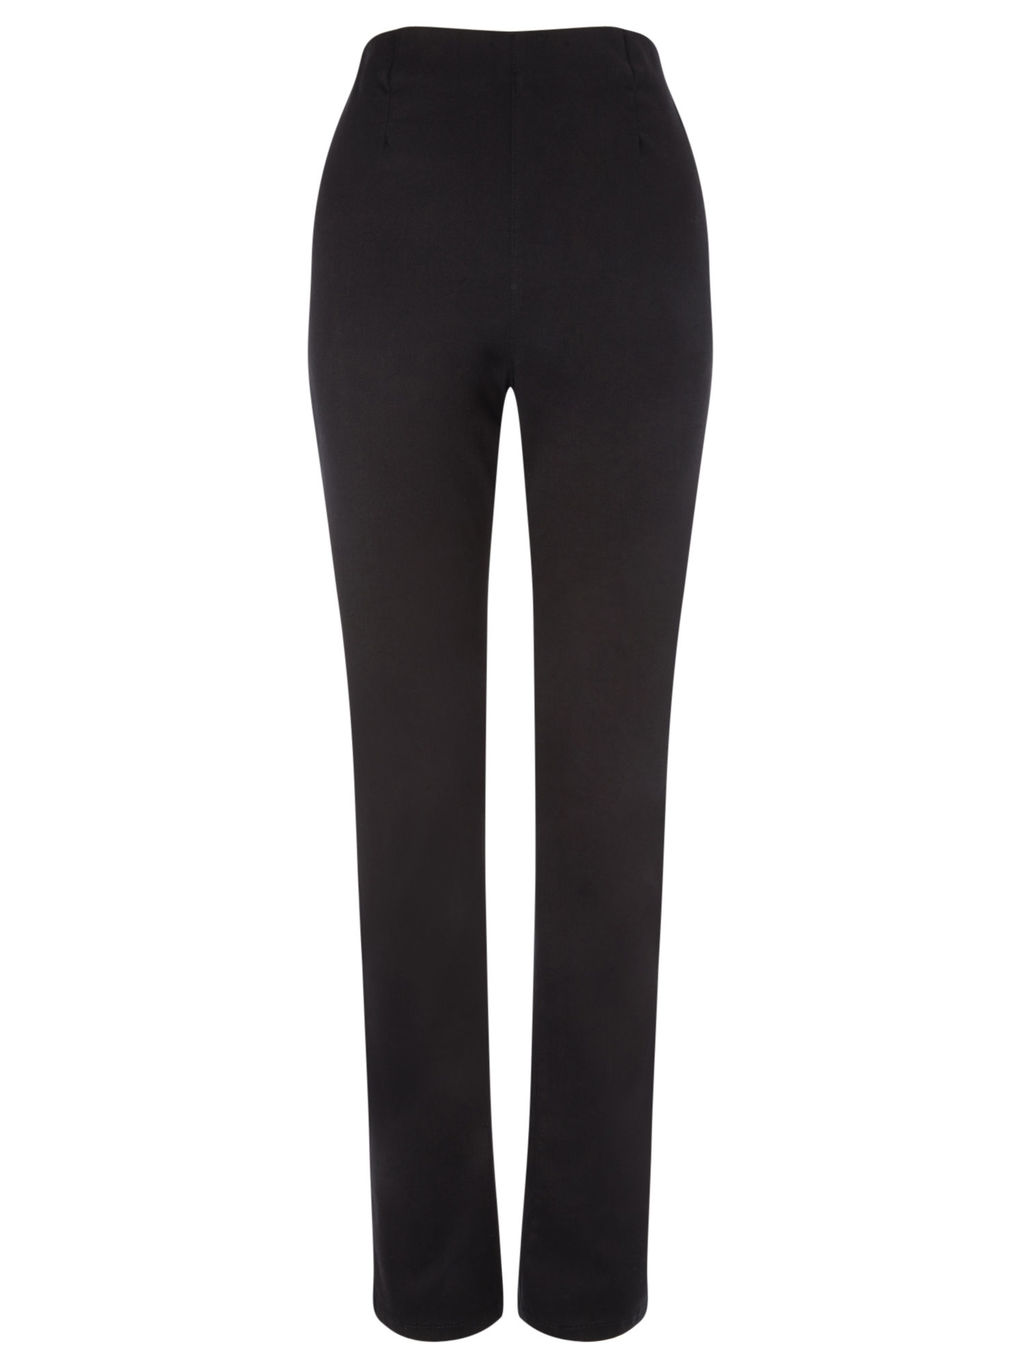 Black Jegging Regular - length: standard; pattern: plain; waist: high rise; style: jeggings; predominant colour: black; occasions: casual, creative work; fibres: cotton - stretch; texture group: denim; pattern type: fabric; season: s/s 2016; wardrobe: basic